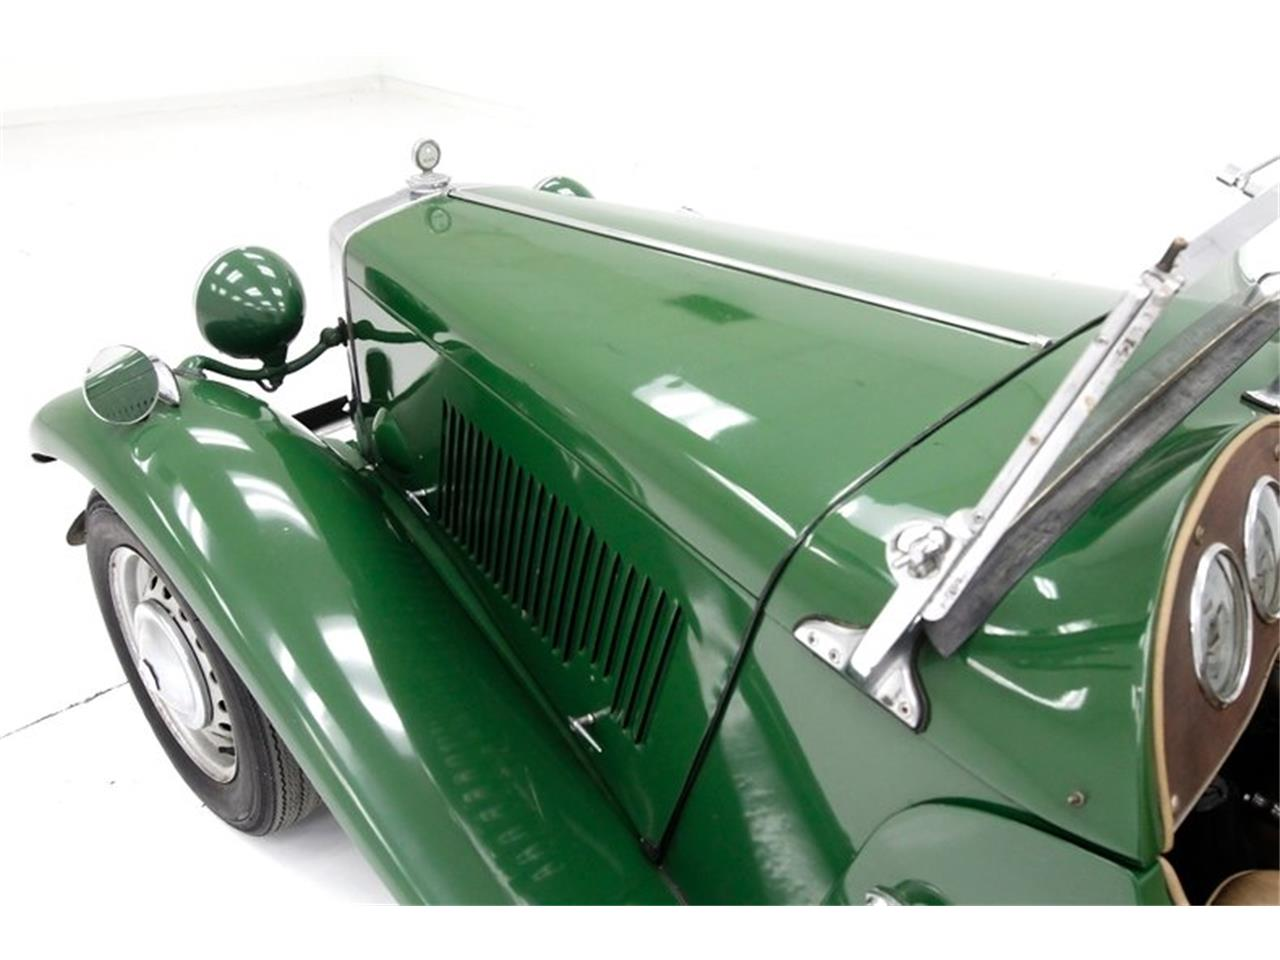 Large Picture of Classic 1953 MG TD located in Pennsylvania - $20,000.00 Offered by Classic Auto Mall - PY07